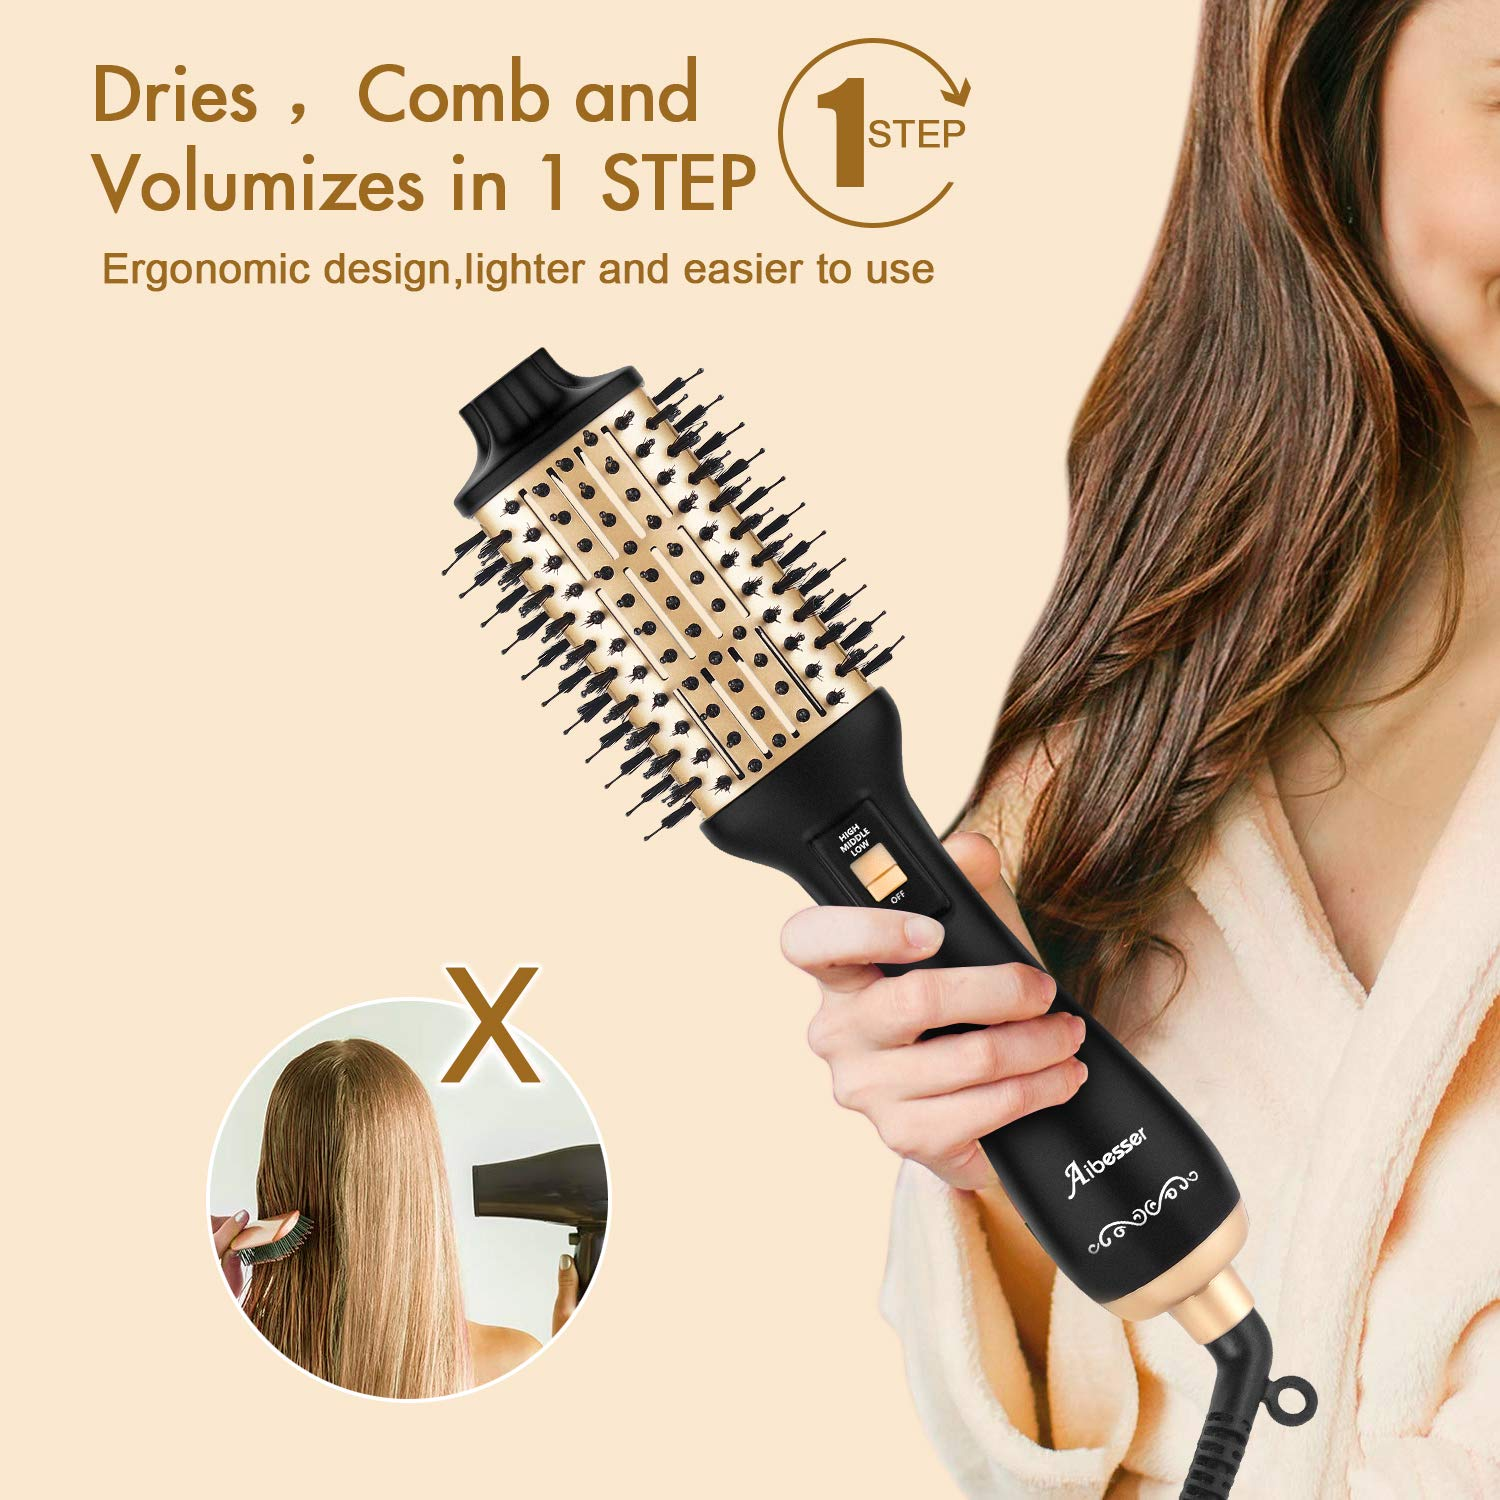 Hair Dryer Brush, Aibesser Dryer and Volumizer Hot Air Brush, Blow Dryer Brush with ION Generator, and Ceramic Coating for Anti-Frizz Fast Drying, Blowouts and Styler for All Hair Types : Beauty